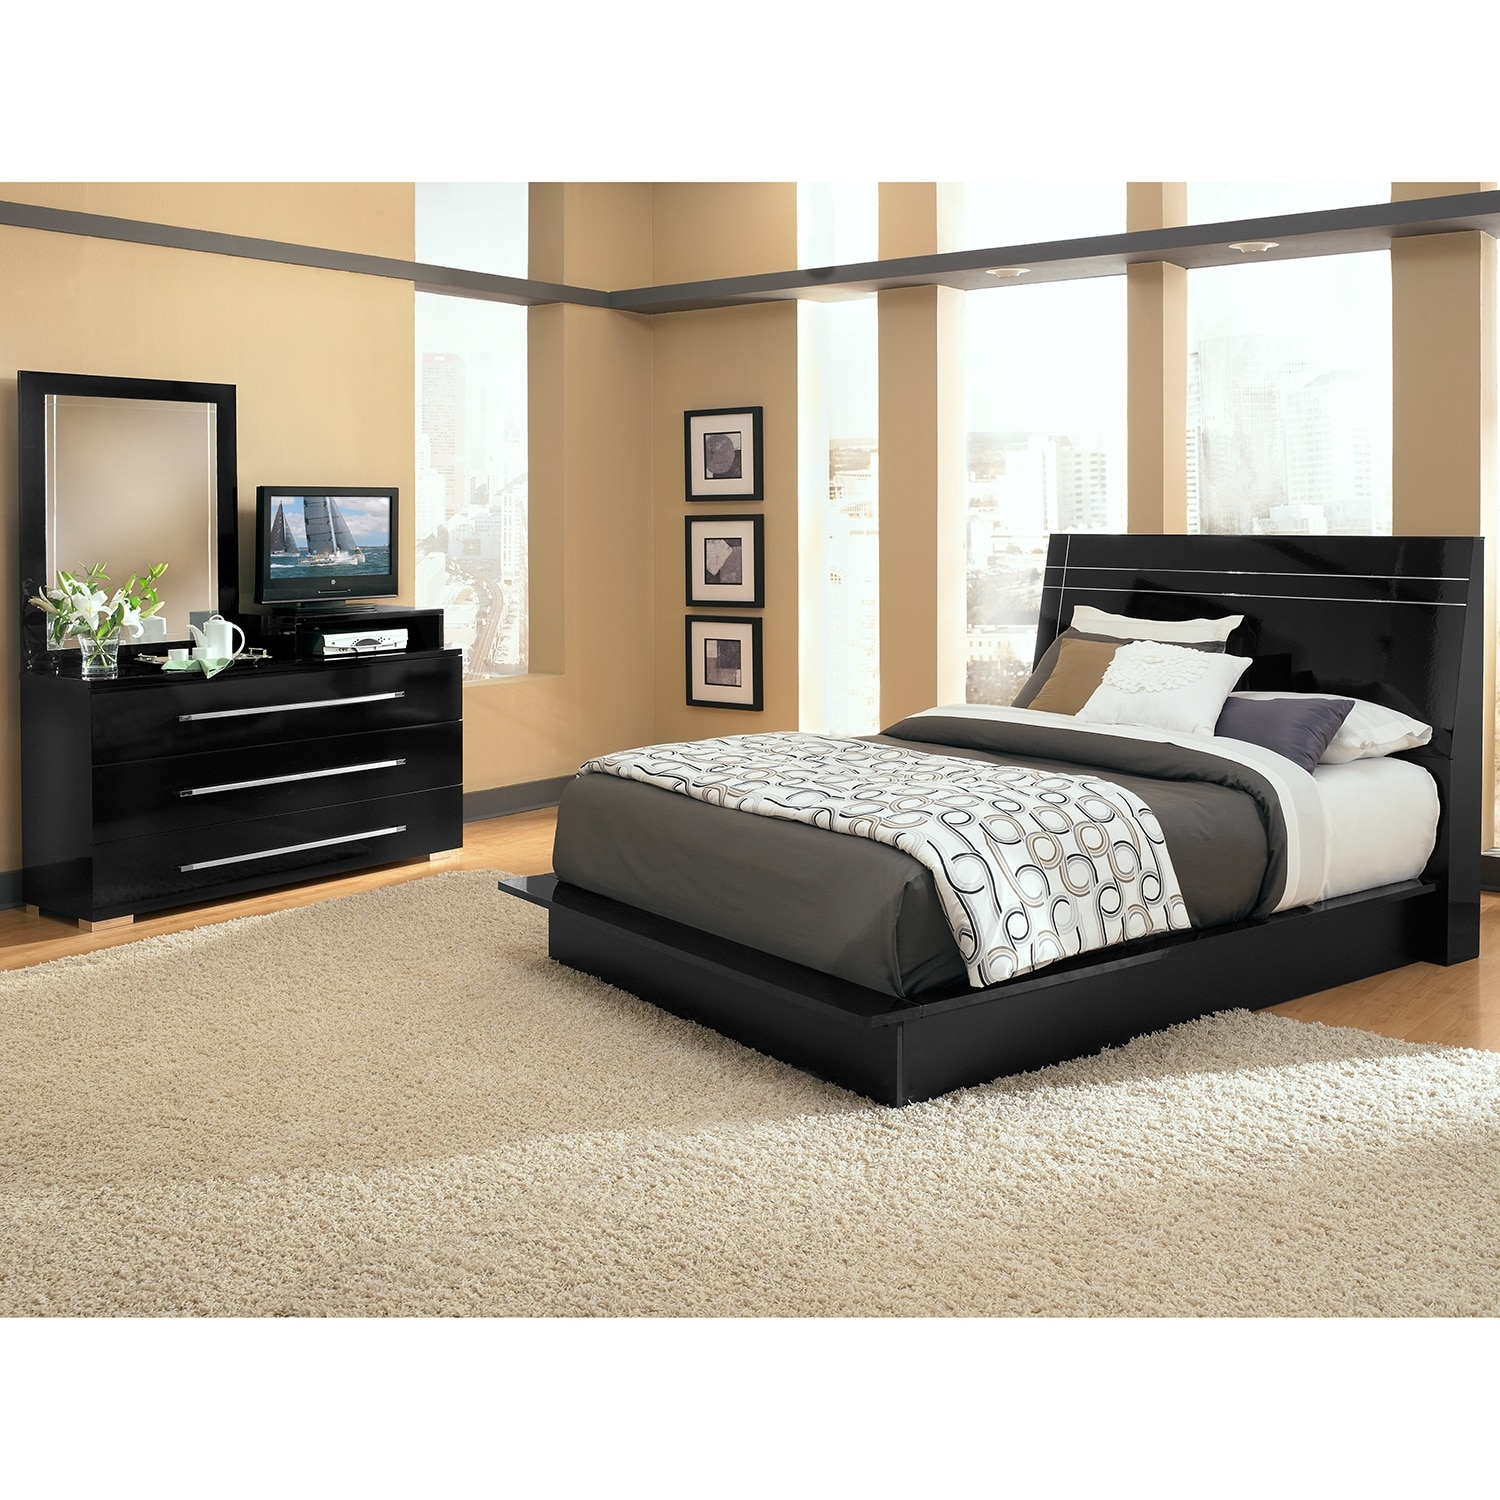 value city bedroom sets dimora 5 king panel bedroom set with media dresser 17687